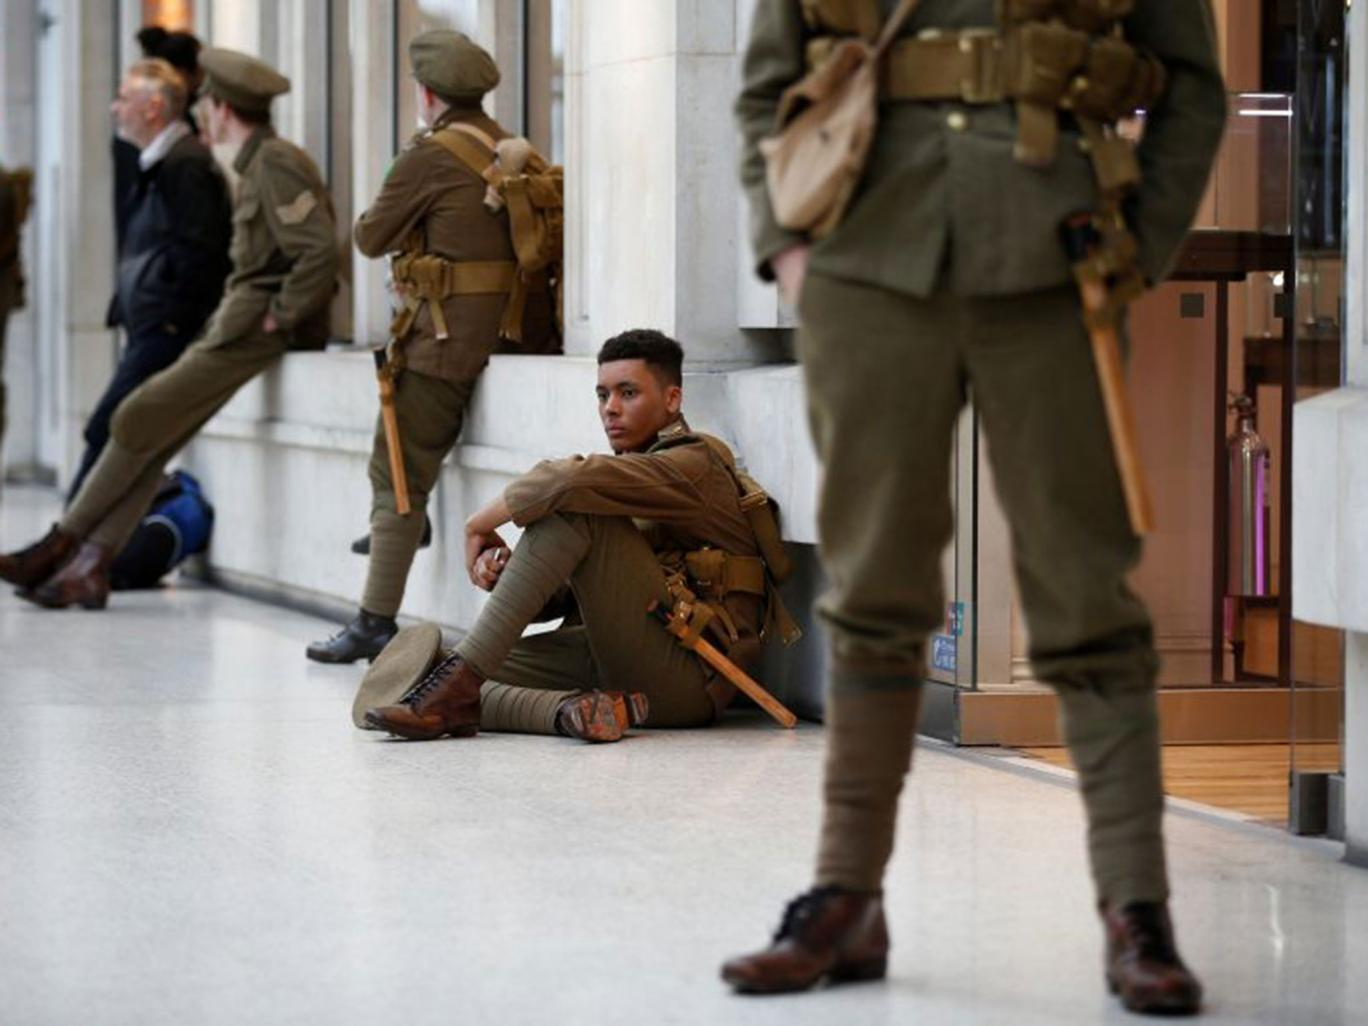 soldiers-wearehere-somme-reuters